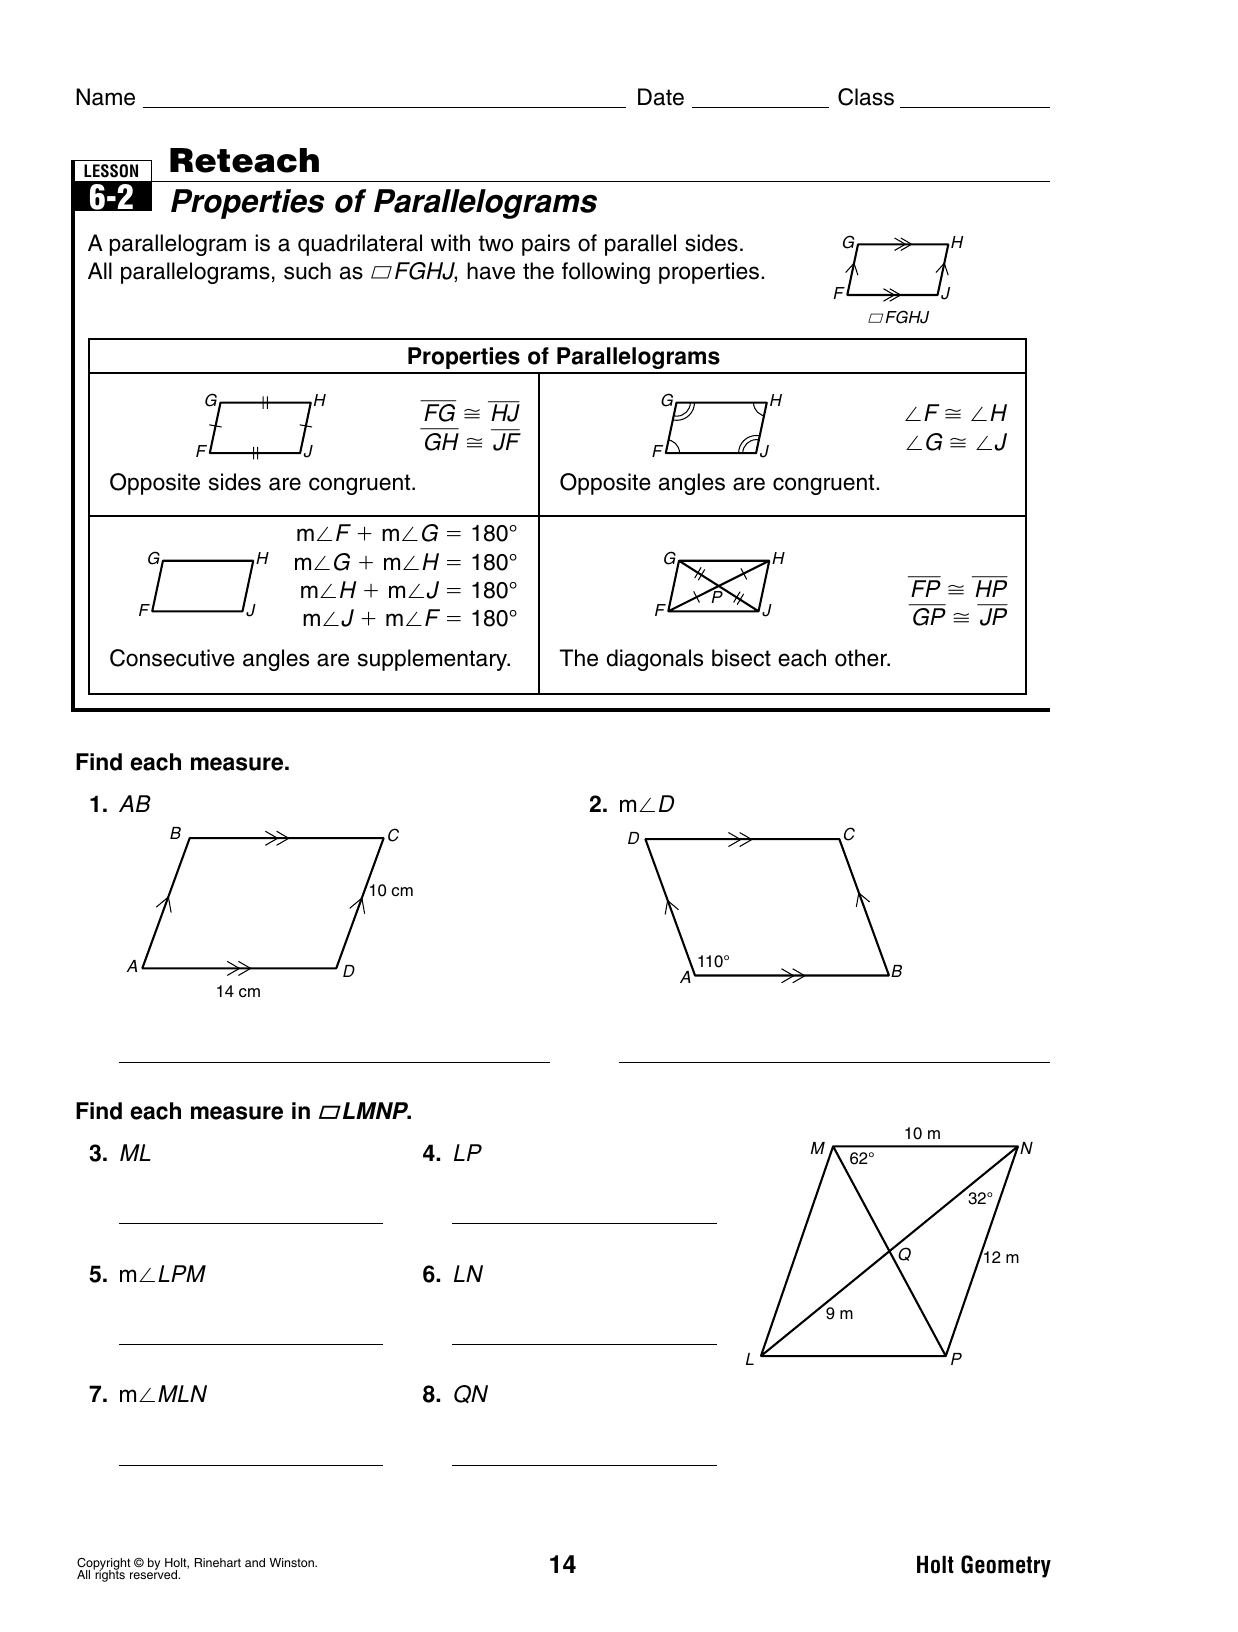 problem solving lesson 6-2 properties of parallelograms